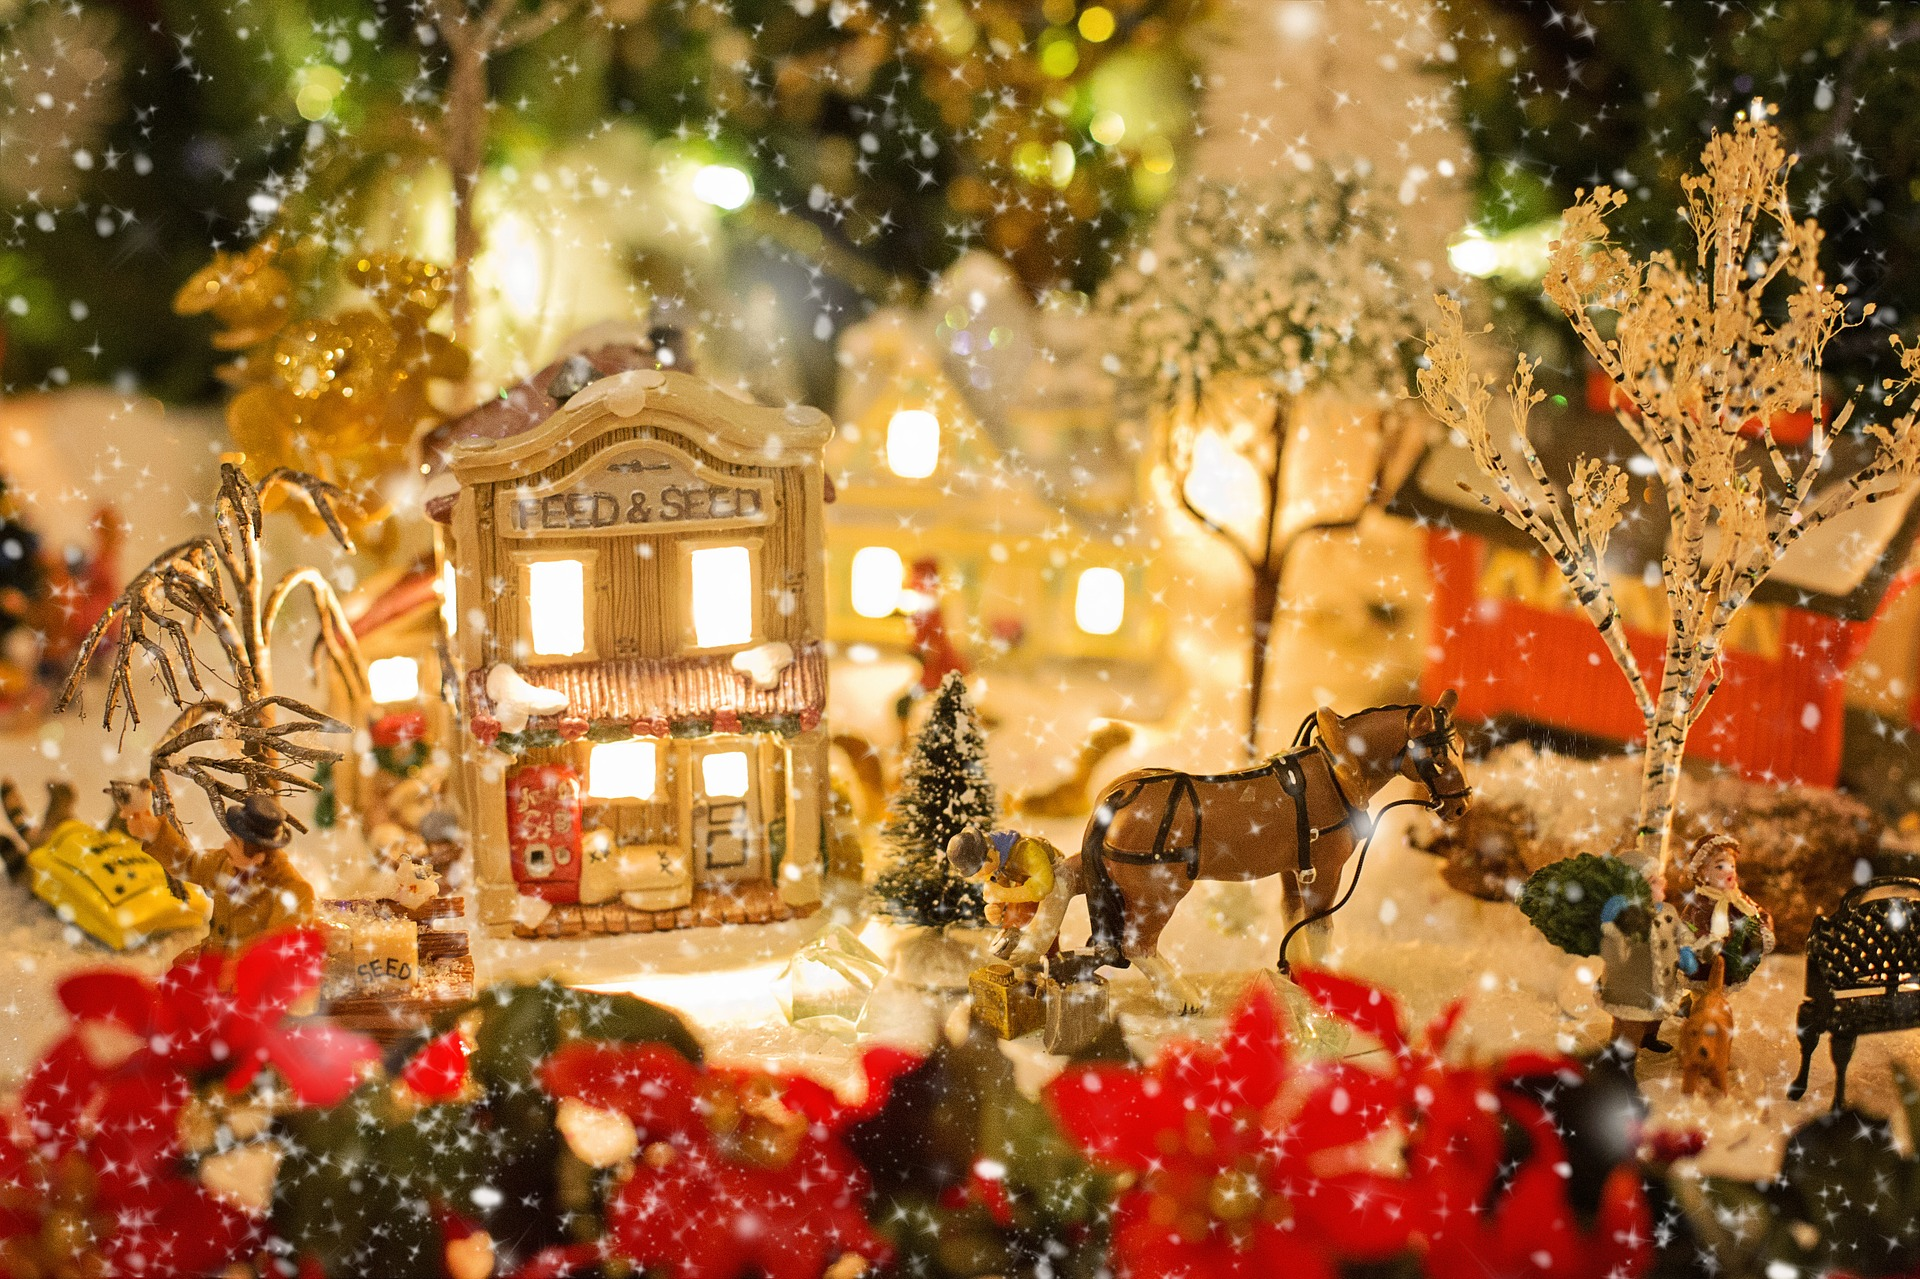 Christmas Village, Village, Winter, Object, Model, HQ Photo